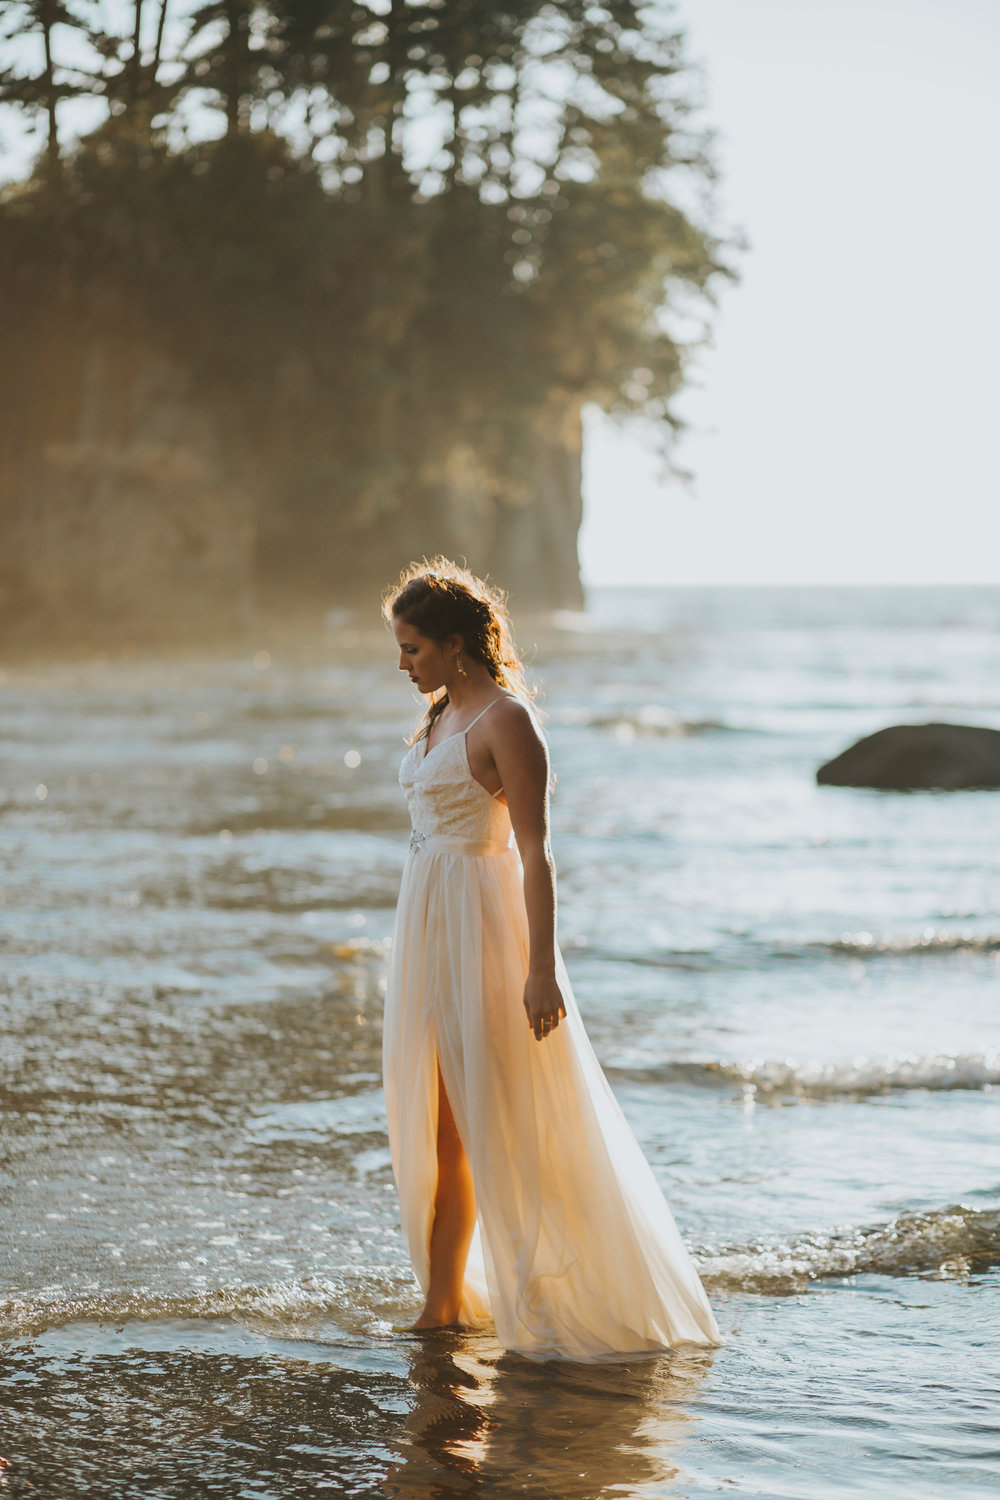 Port-Angeles-Salt-Creek-beach-wedding-bride-PNW-olympic-peninsula-photographer-Kayla-Dawn-Photography-outdoors-golden-hour-dancer-dress (41).jpg